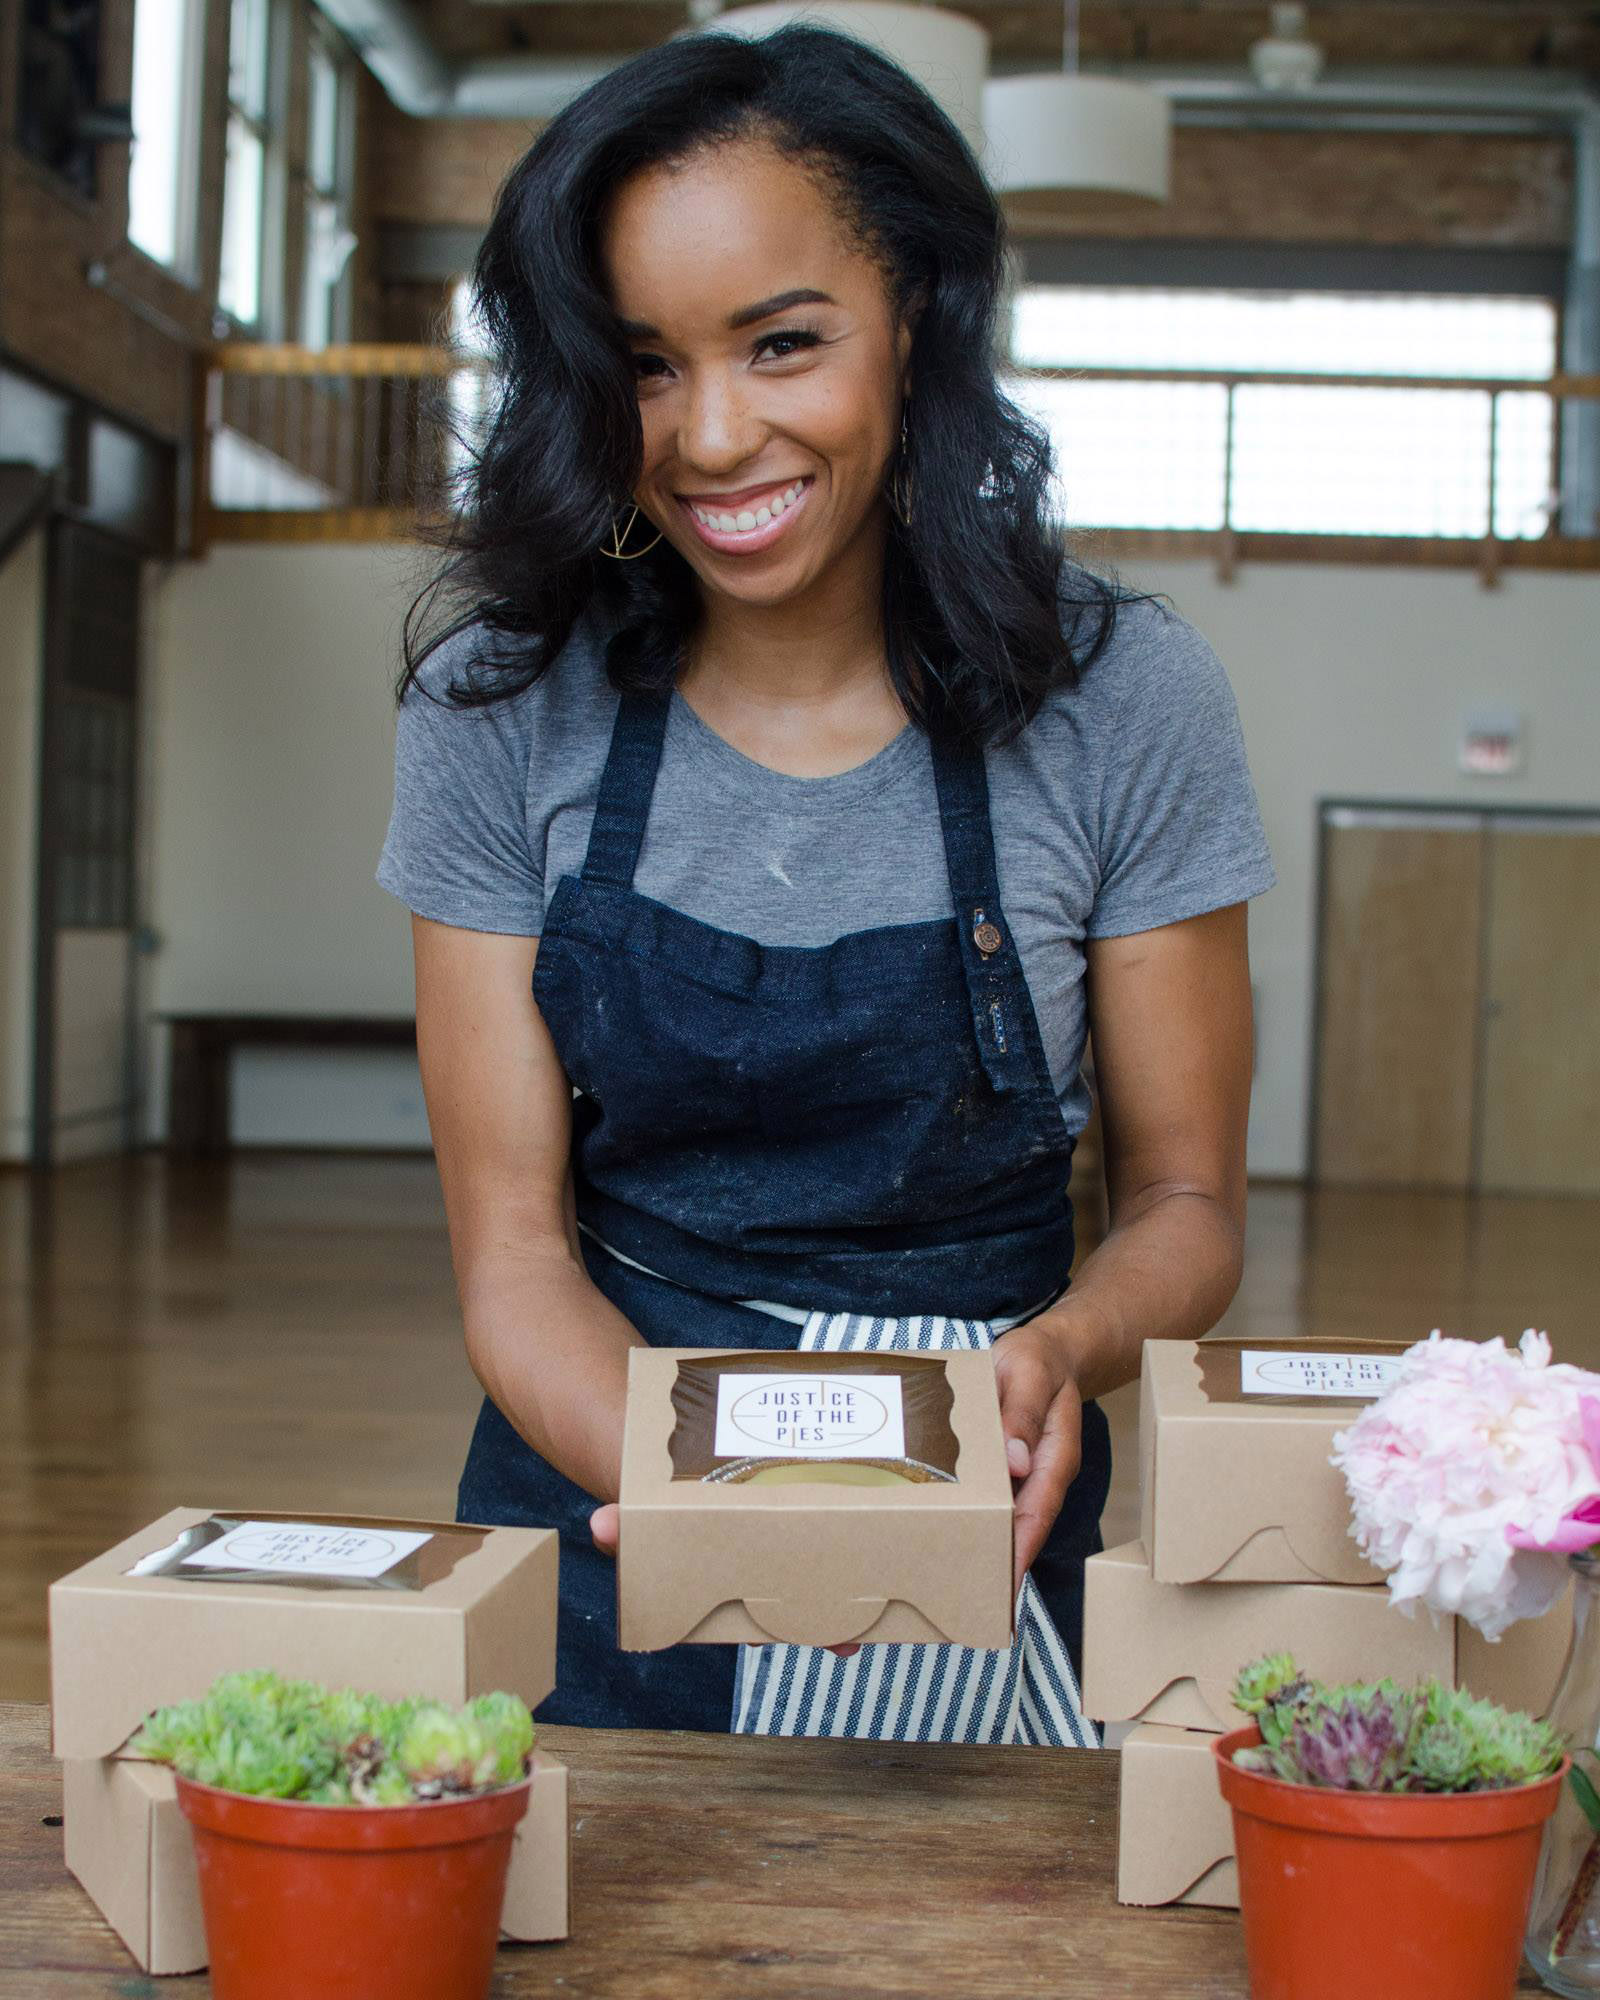 Krystal Mack, BLK//SUGAR, African American Entrepreneur, African American Business, Black Business, Black Entrepreneur, Black Bakery, Justice Of The Pies, Maya-Camille Broussard